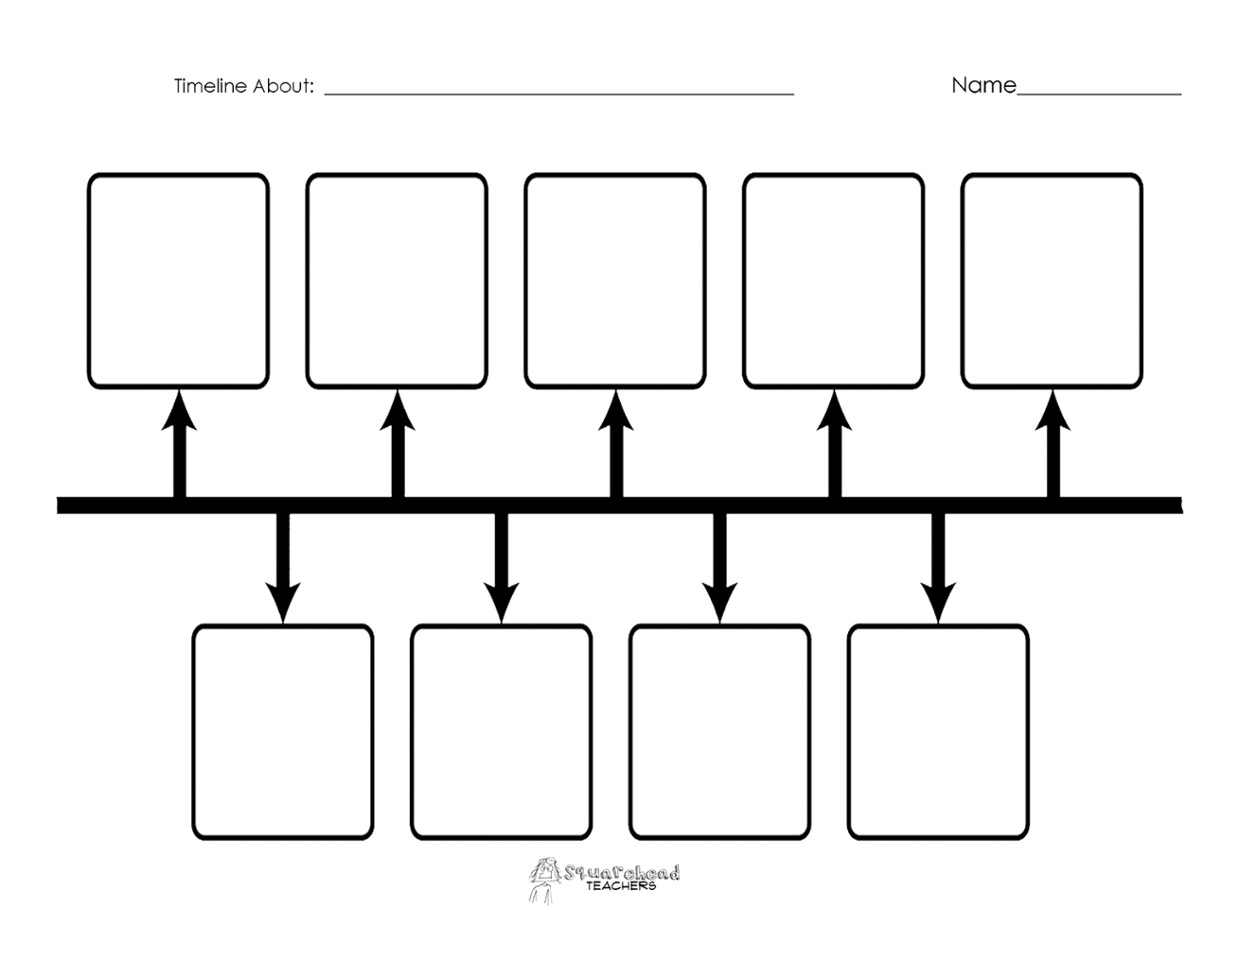 Worksheets Civil War Timeline Worksheet civil war timeline thinglink 2 years ago 241